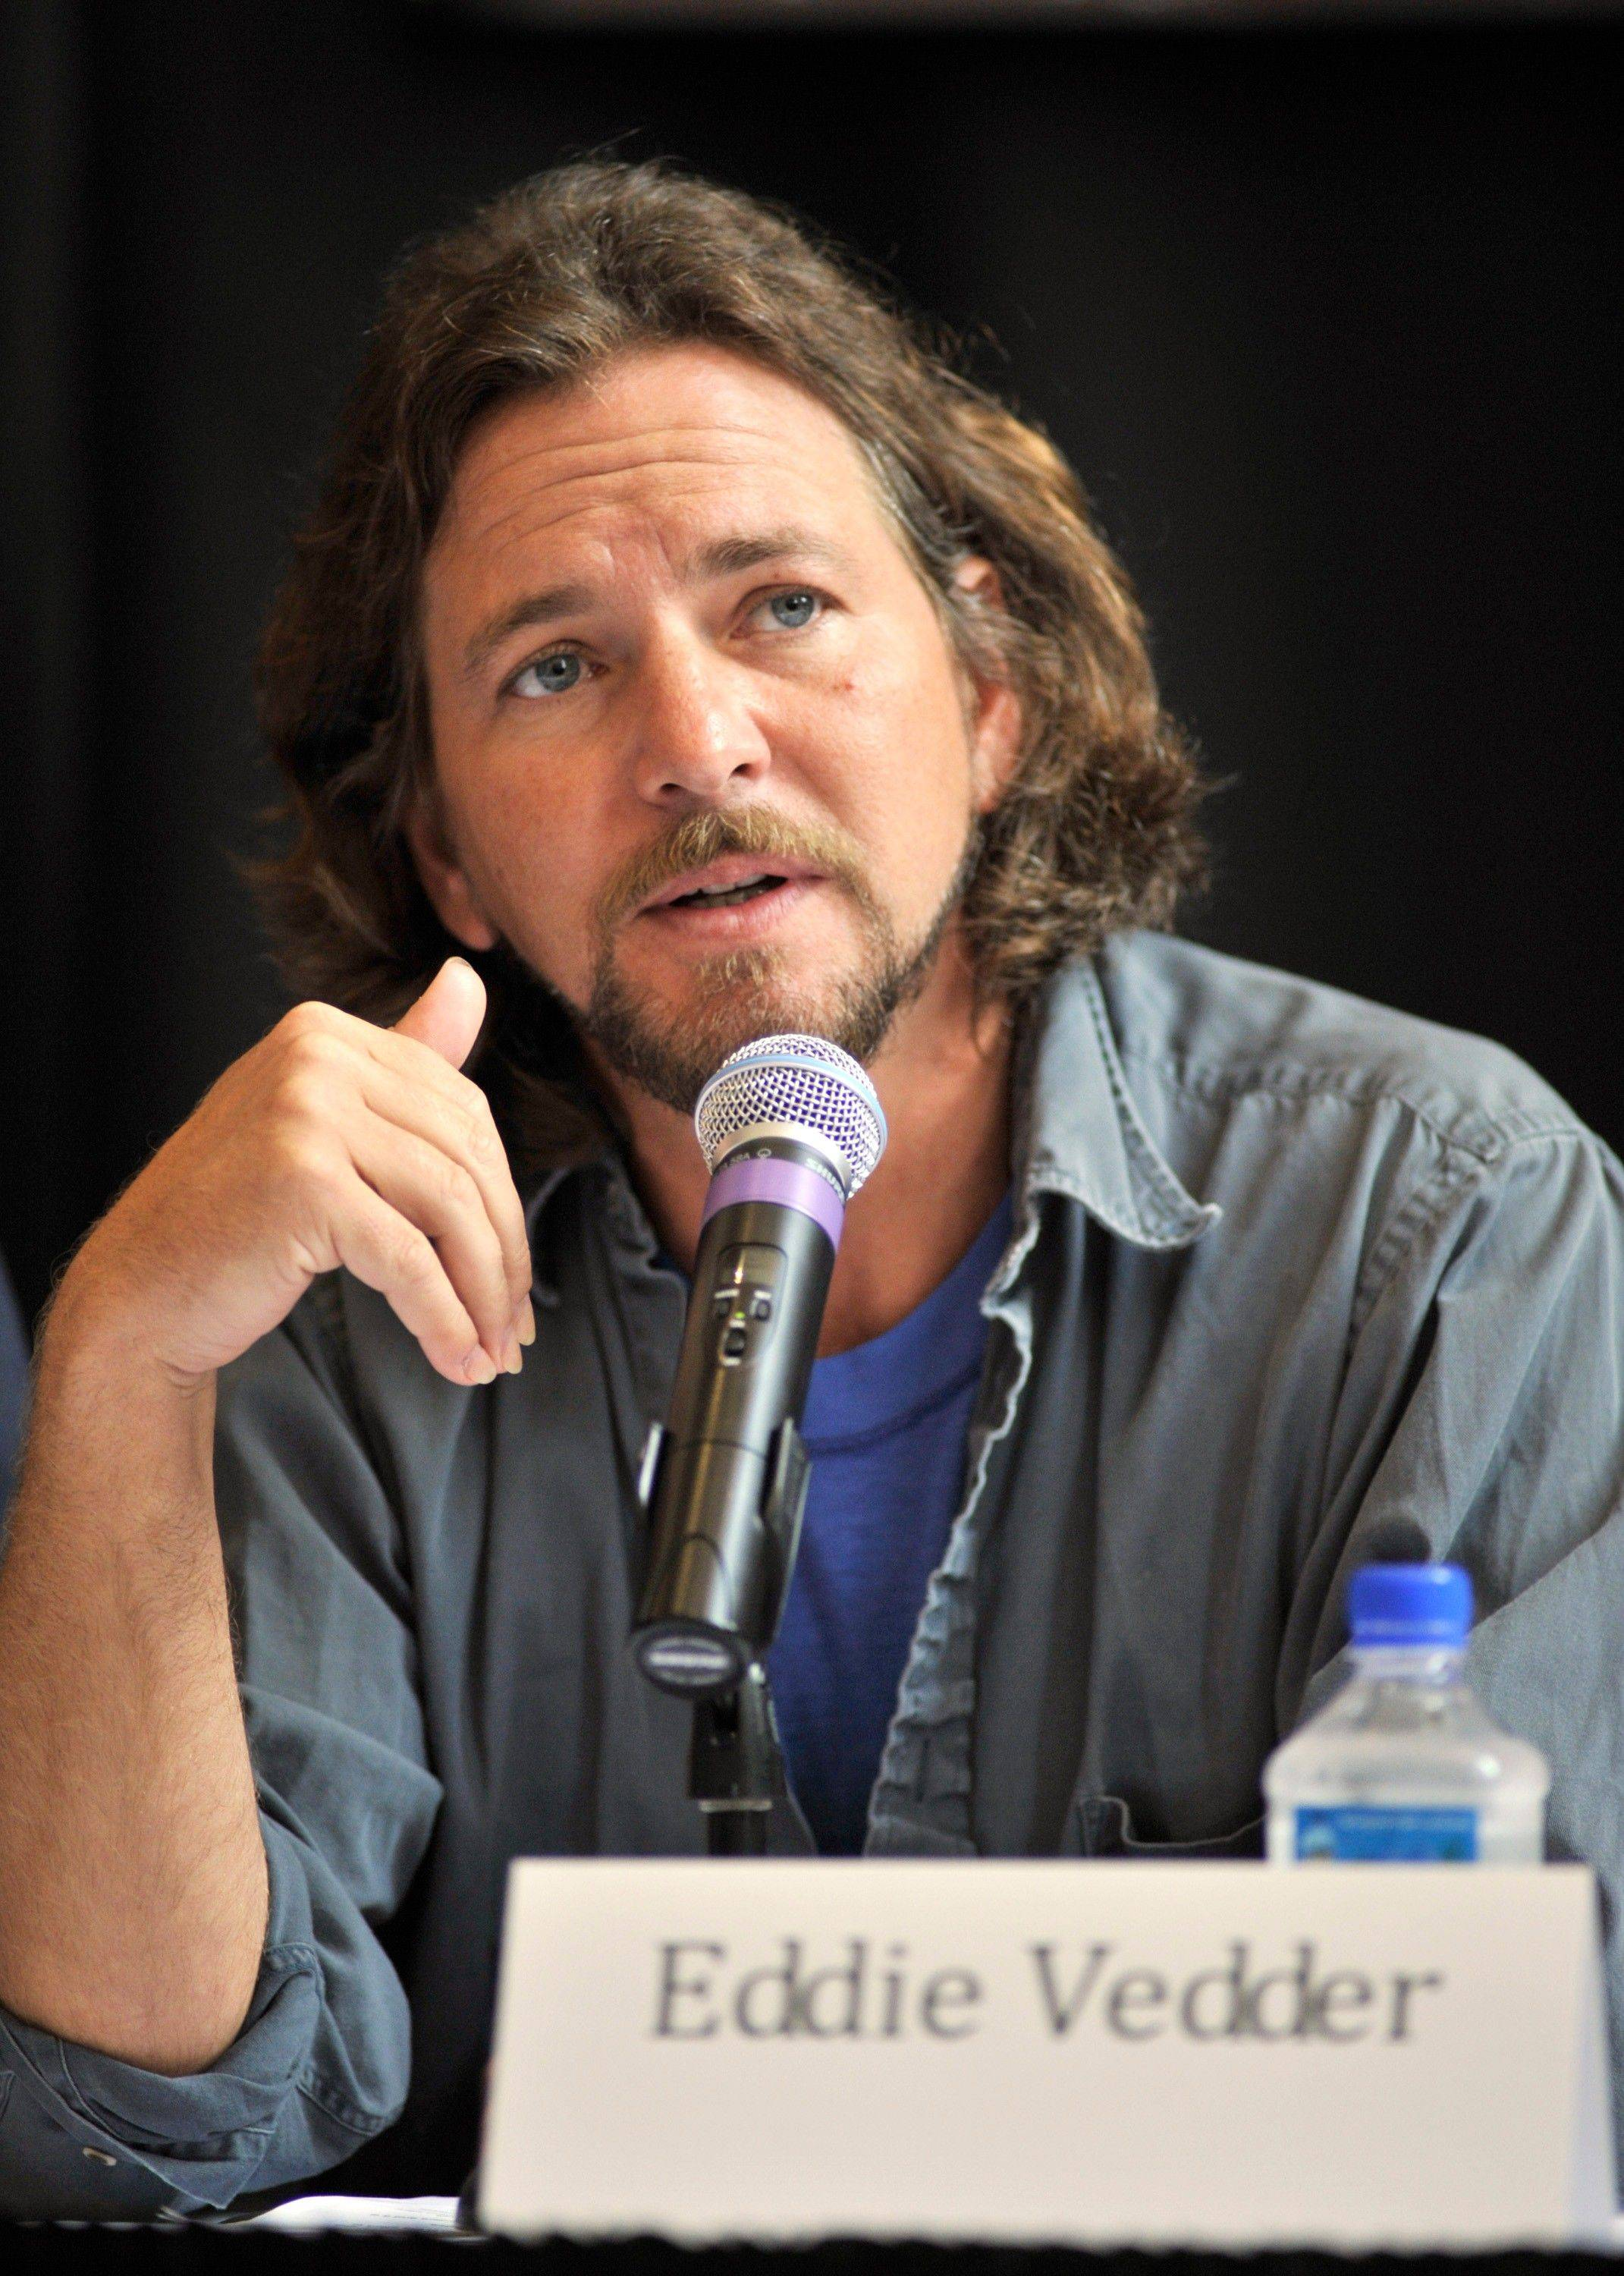 Singer Eddie Vedder of Pearl Jam participates in an Aug. 28, 2010, news conference before the Voices for Justice concert in support of the West Memphis Three in Little Rock, Ark. Vedder and the rest of Pearl Jam have supported Damien Echols, Jessie Misskelley and Jason Baldwin, known as the West Memphis Three, who were convicted in 1993 for the murder of three 8-year-old boys in Arkansas. The men were recently released from prison.